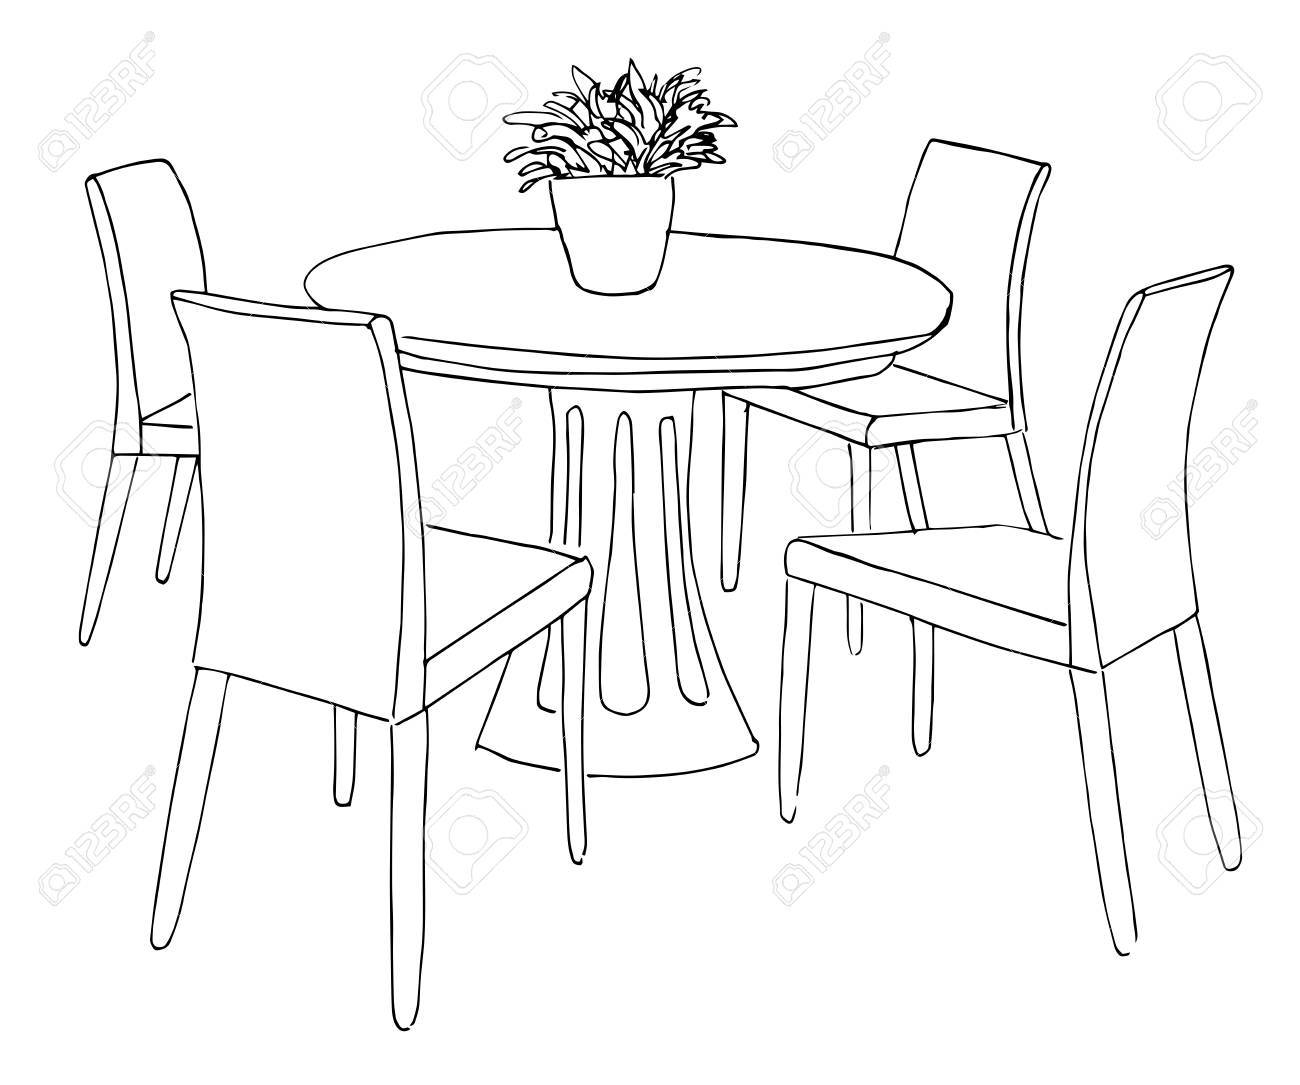 Part Of The Dining Room Round Table And ChairsOn The Table